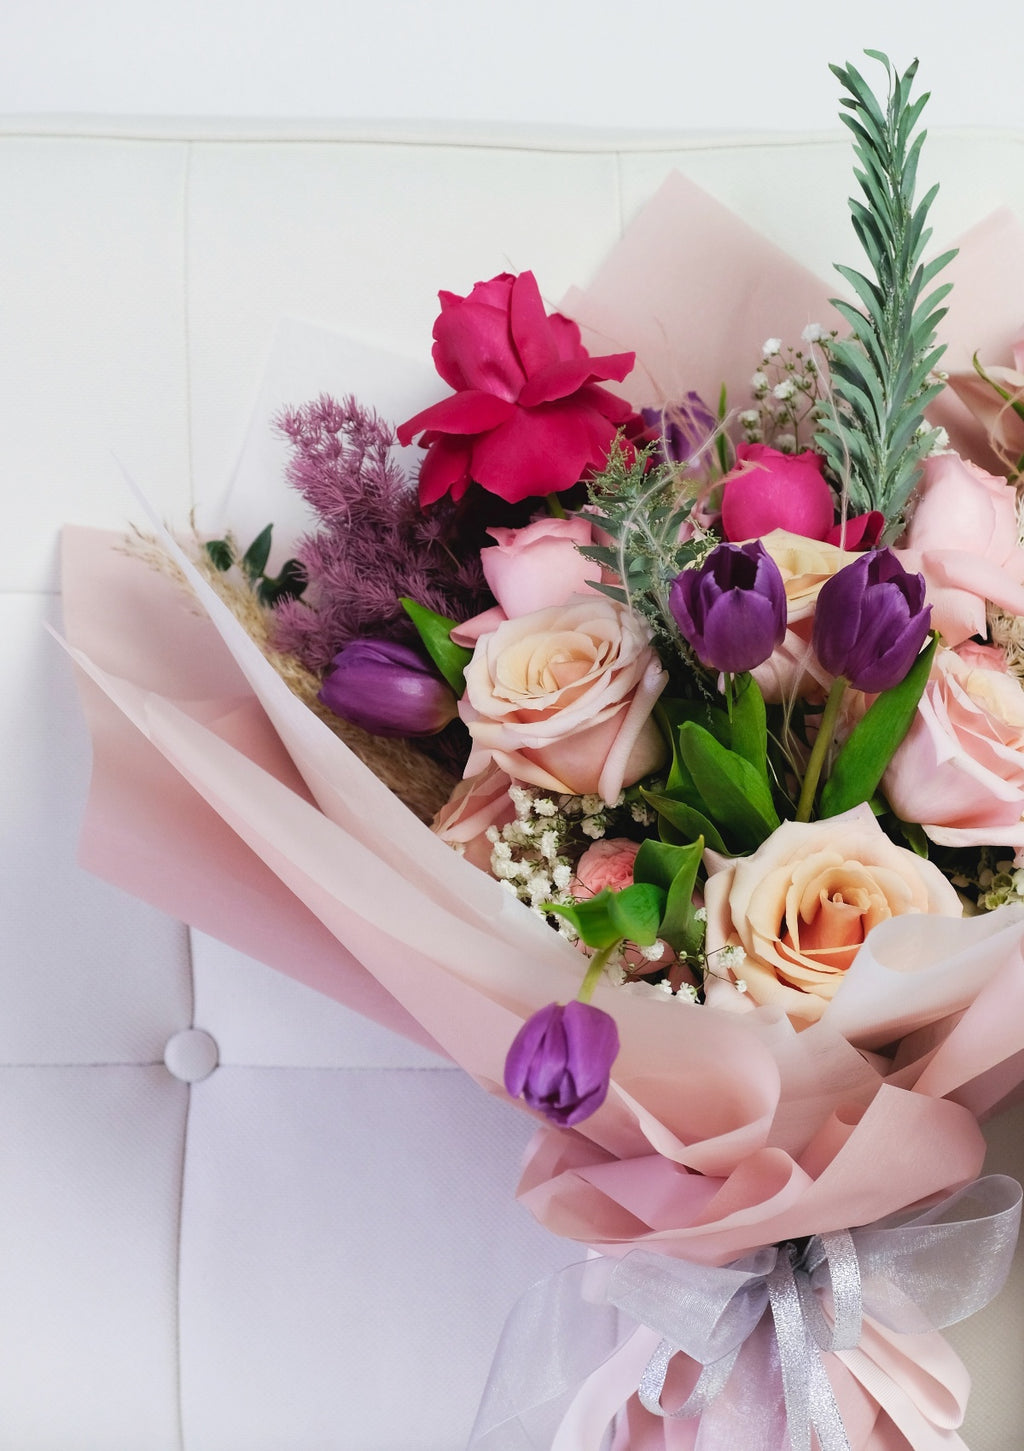 Customised pink and purple romantic flower bouquet for weddings anniversary and birthday flowers floral design by singapore best florist floral mikelle